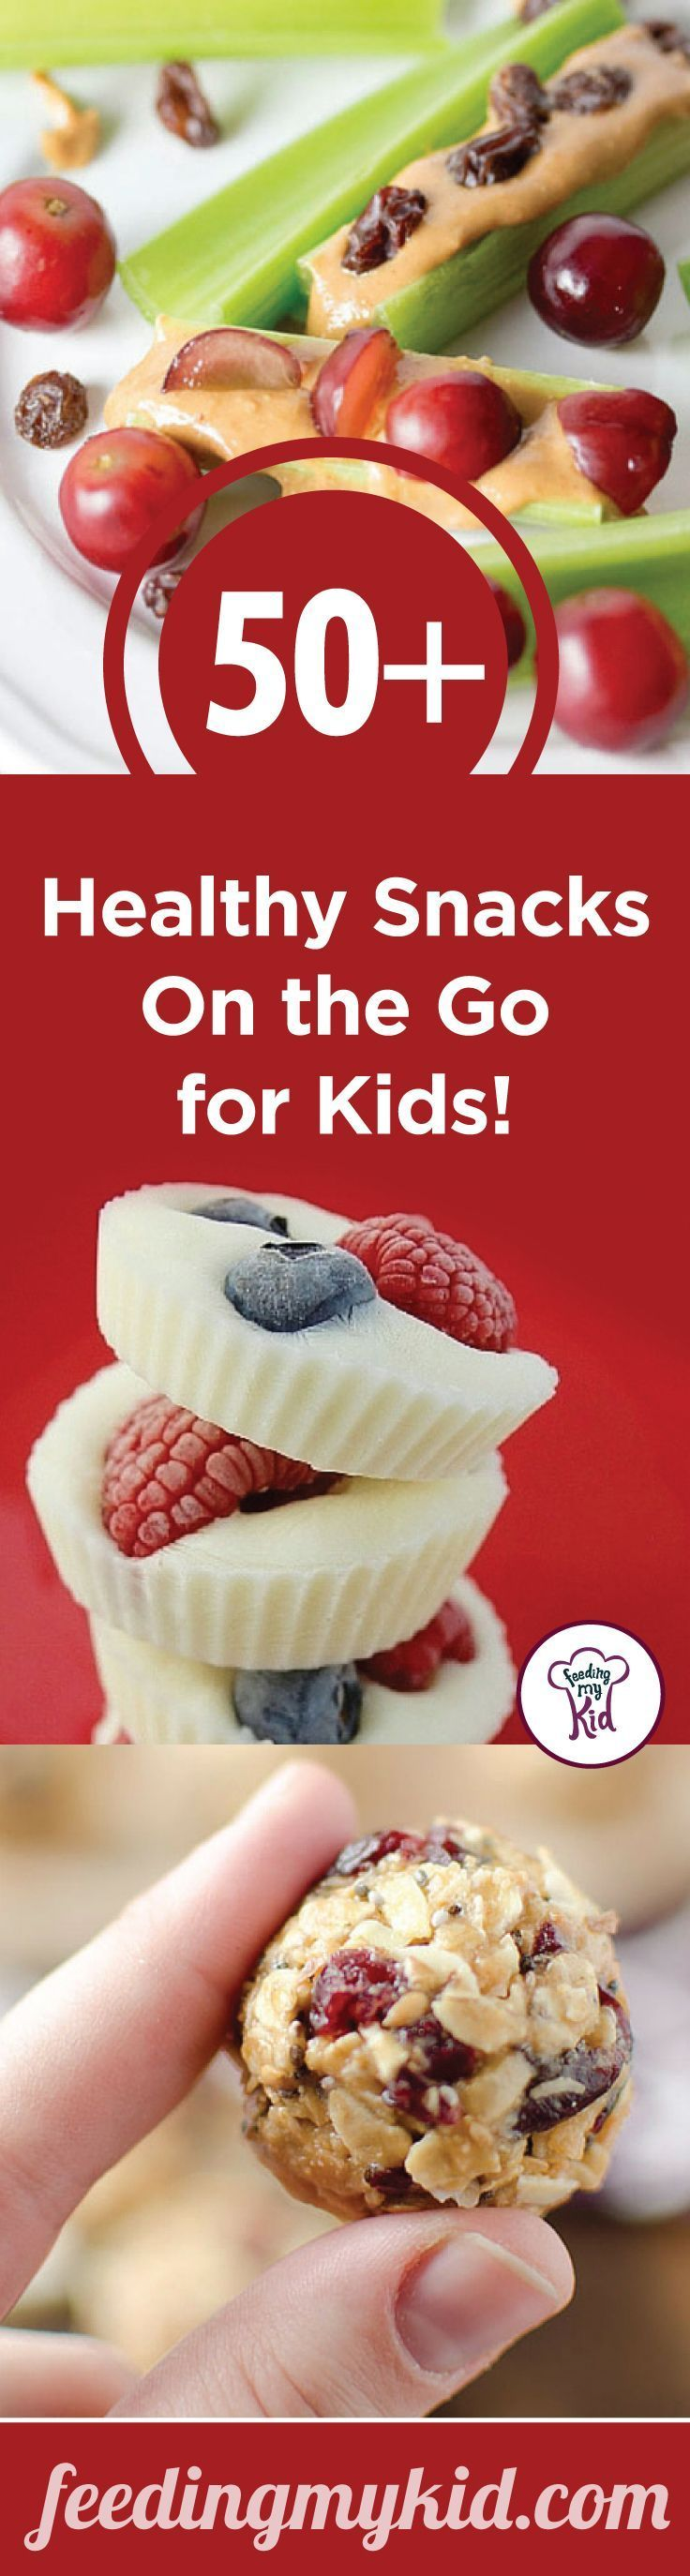 50 Healthy Snacks On the Go for Kids!